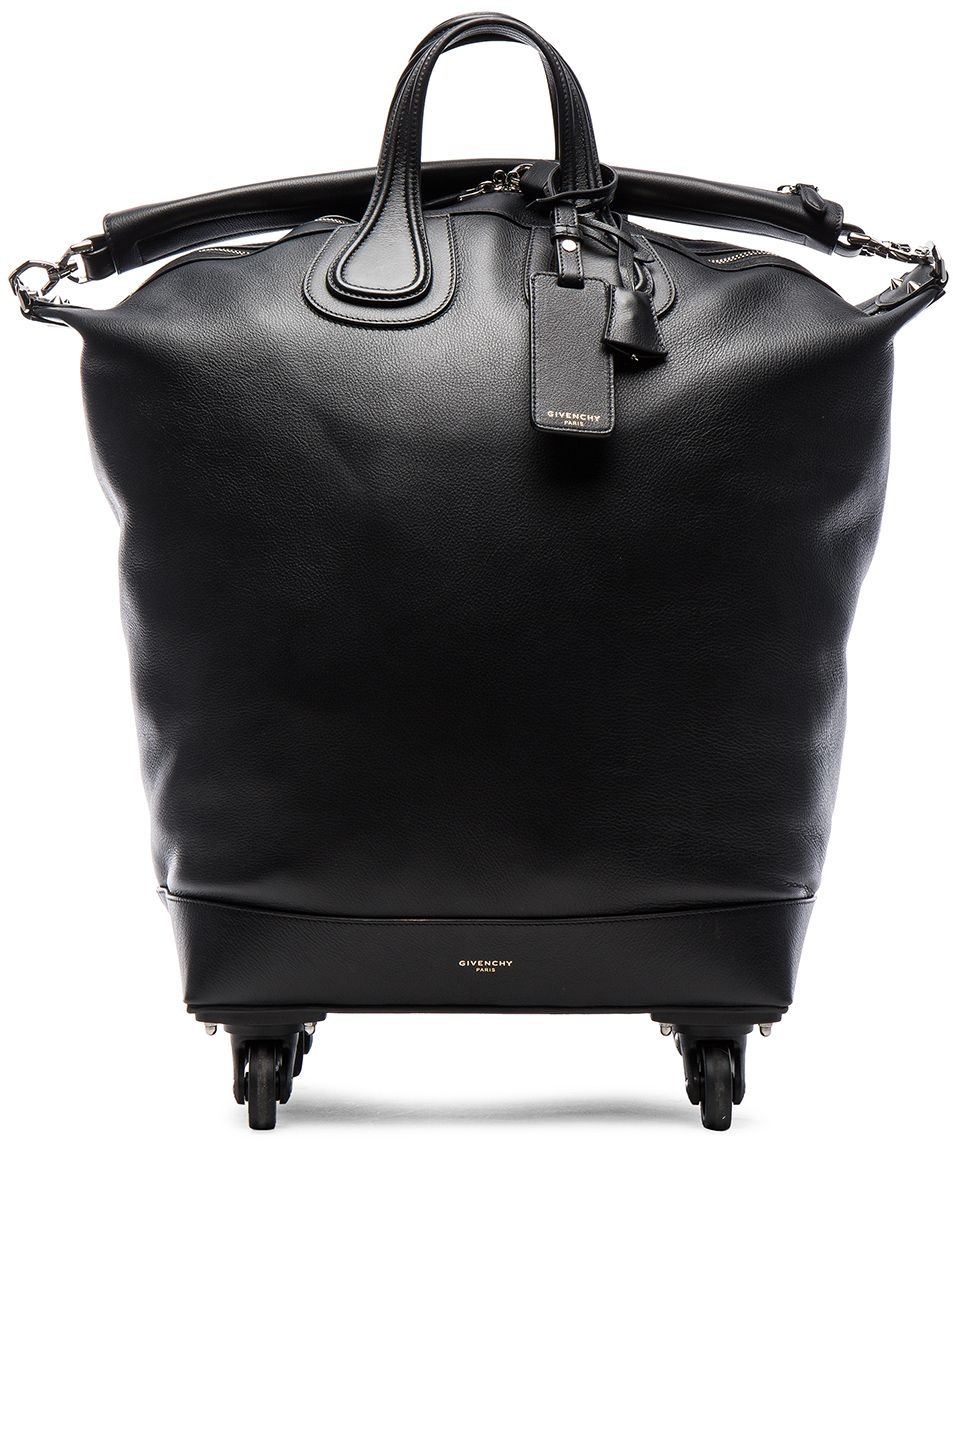 2d33a6d5f6 GIVENCHY Nightingale Trolley Bag. #givenchy #bags #trolley #leather #travel  bags #canvas #lining